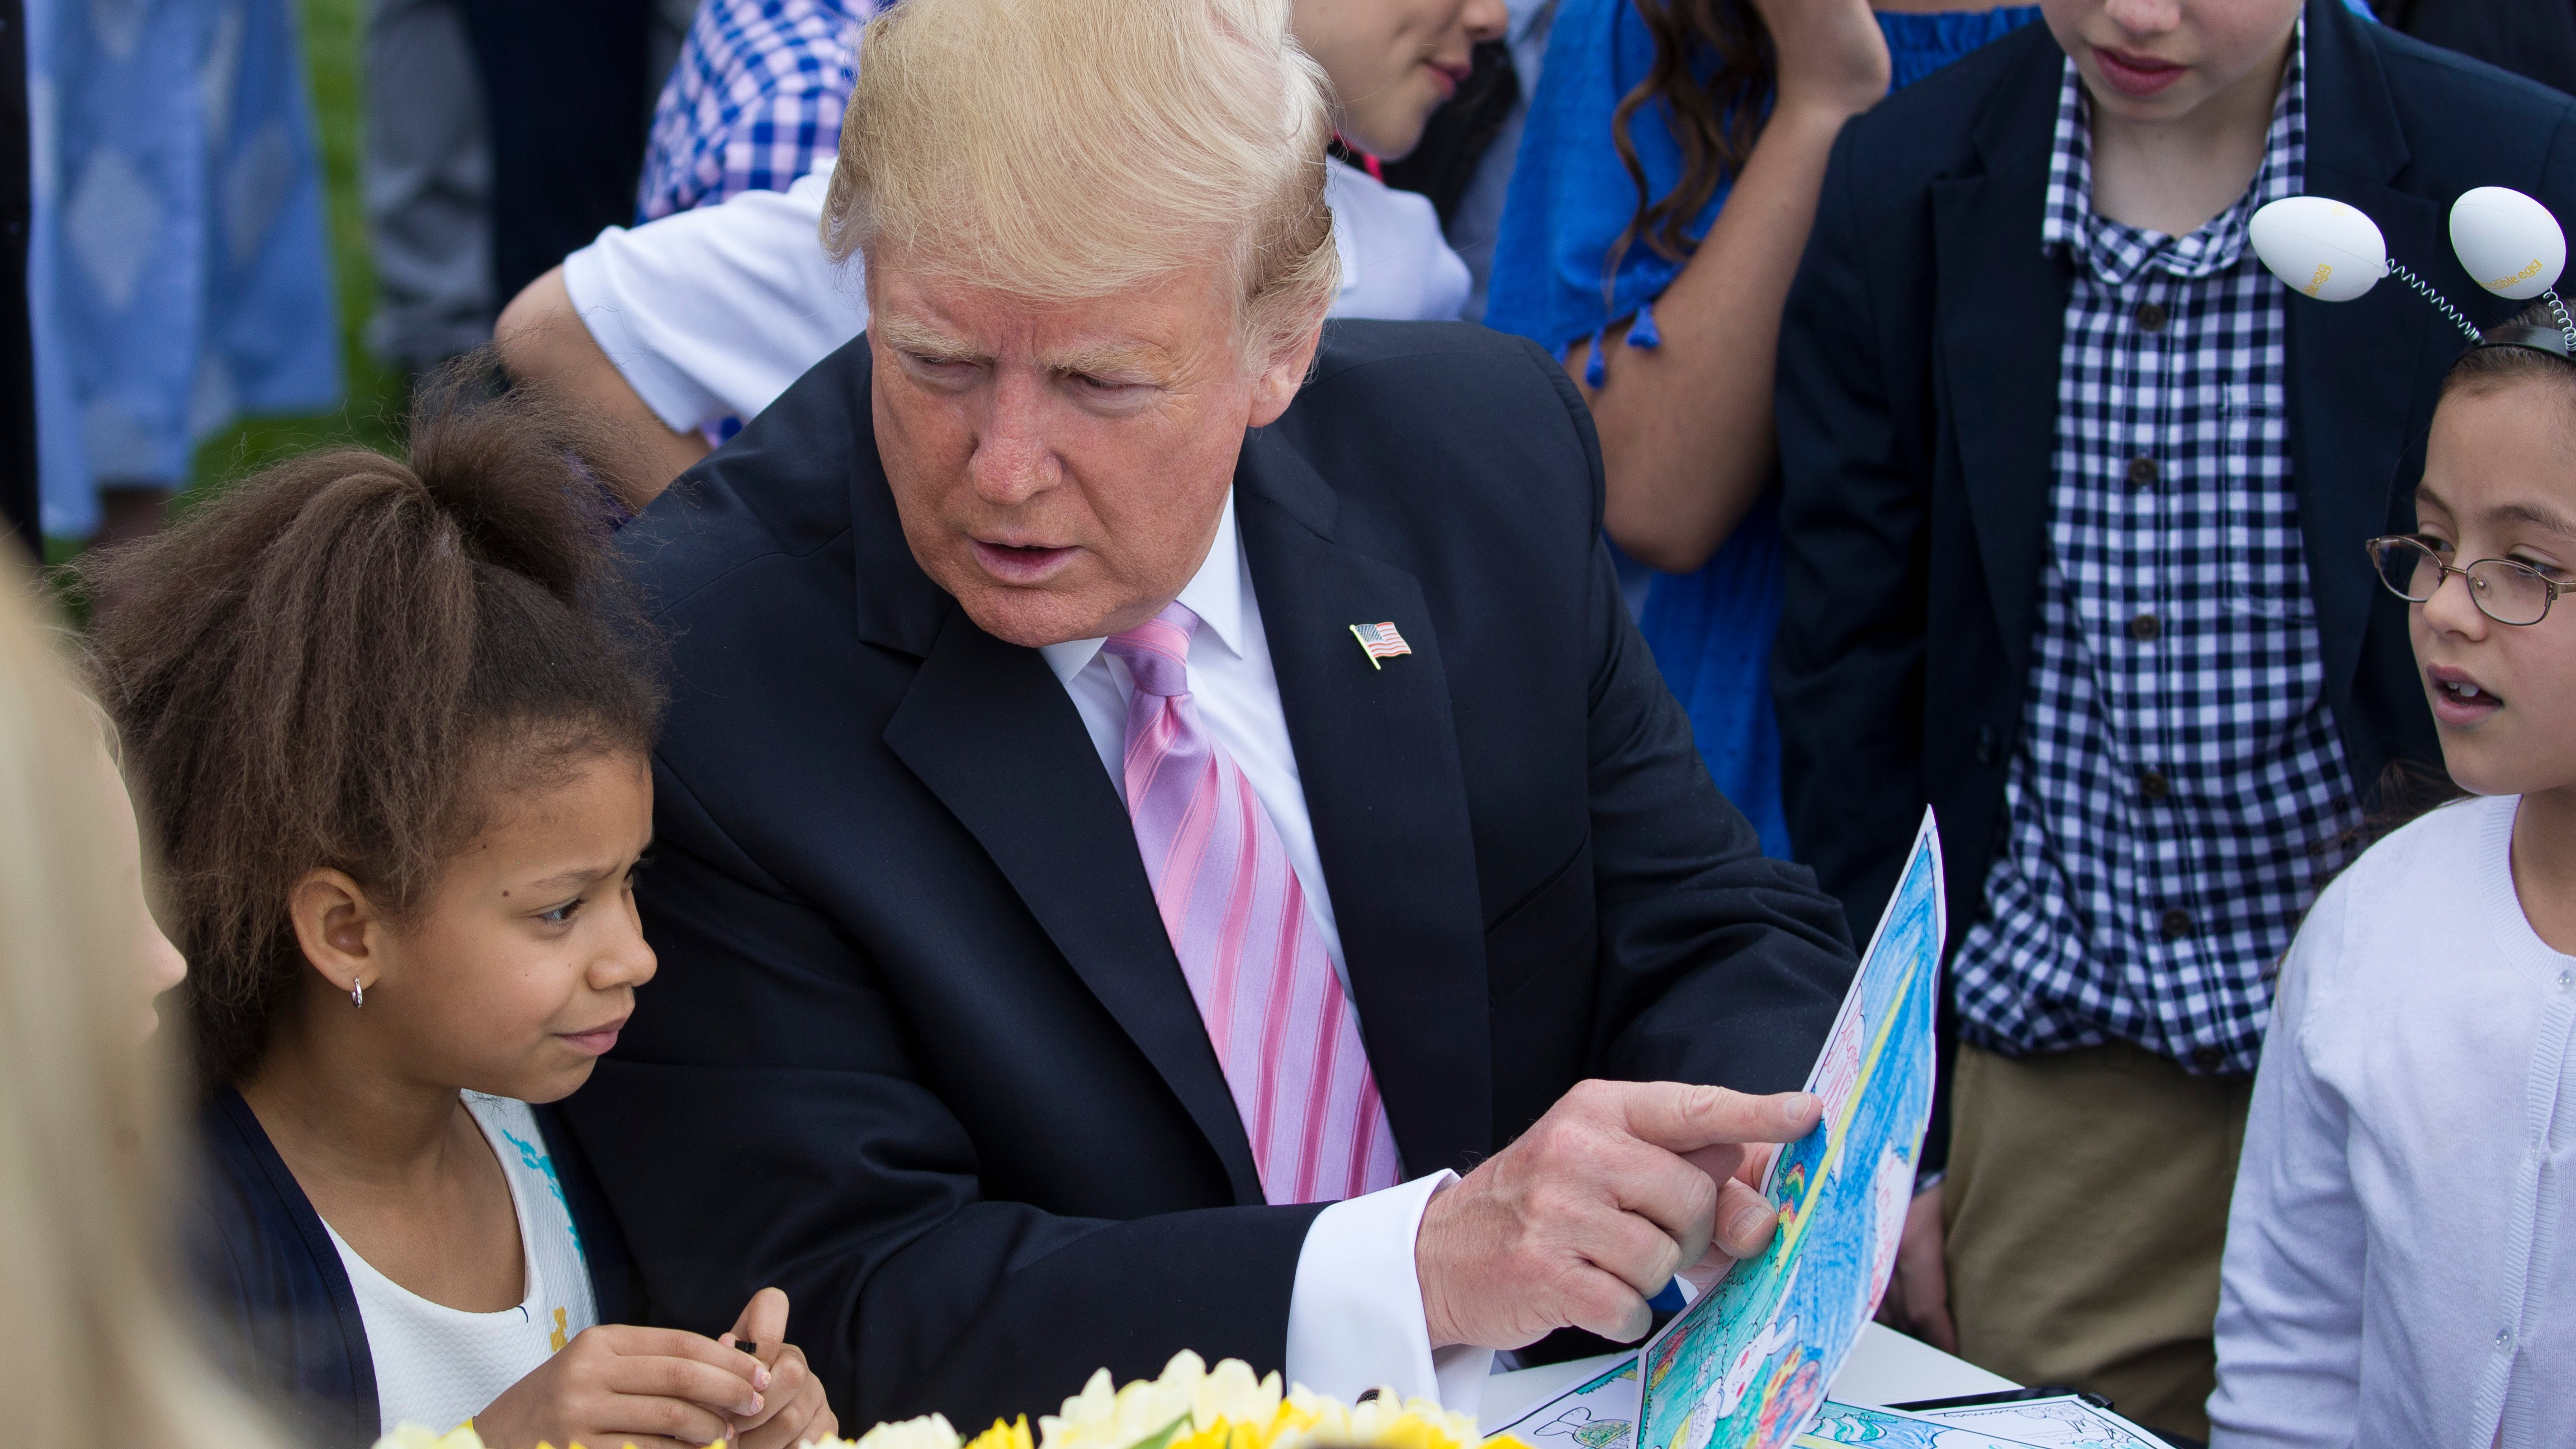 Trump assures kids at the White House Easter Egg Roll that the wall is happening